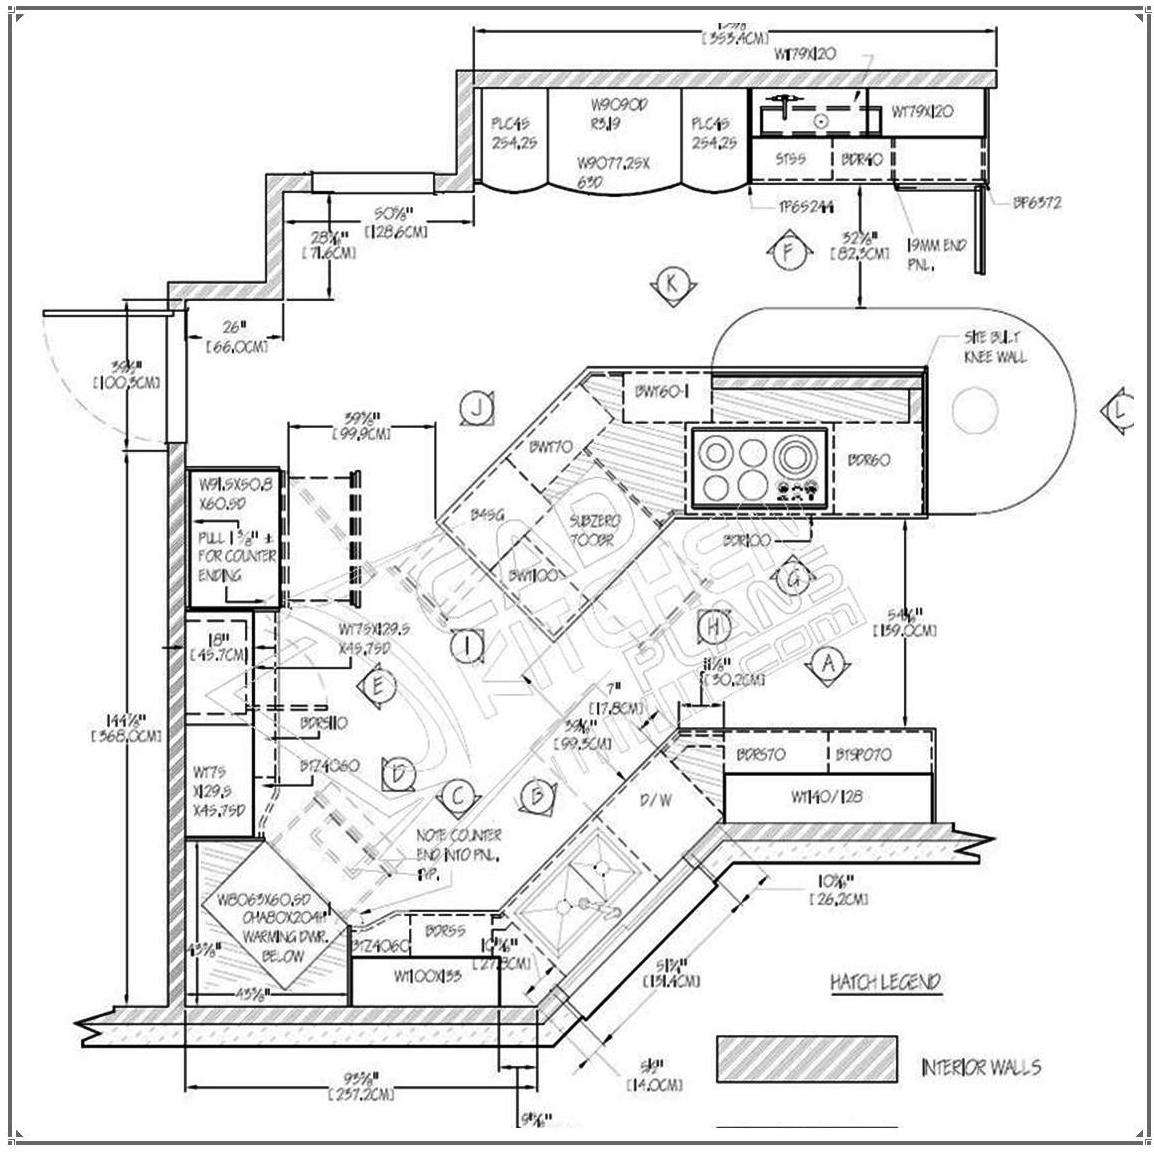 Kitchen Design Software Free: Kitchen Cabinet Drawing At GetDrawings.com